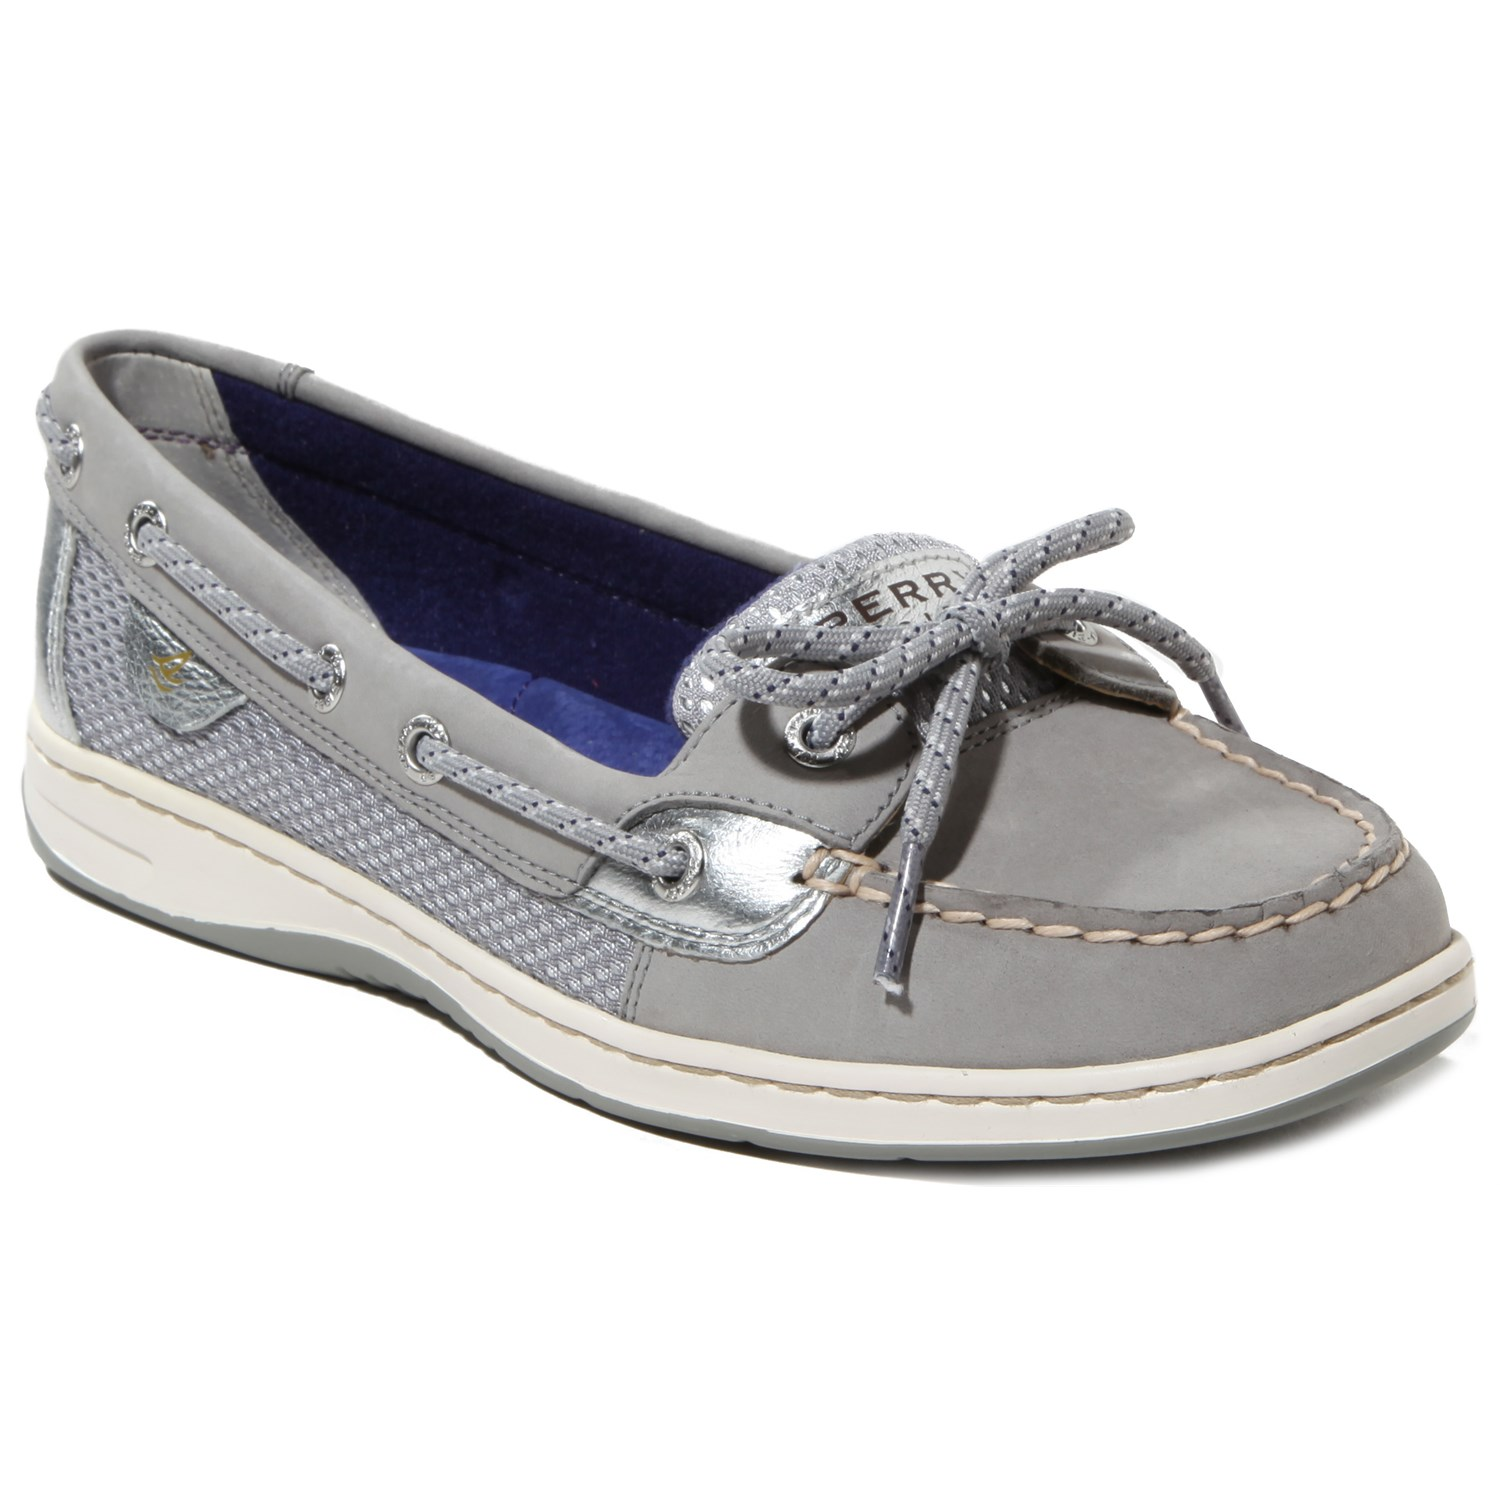 Sperry Angelfish | Women's - Linen/Oat - FREE SHIPPING at OnlineShoes.com